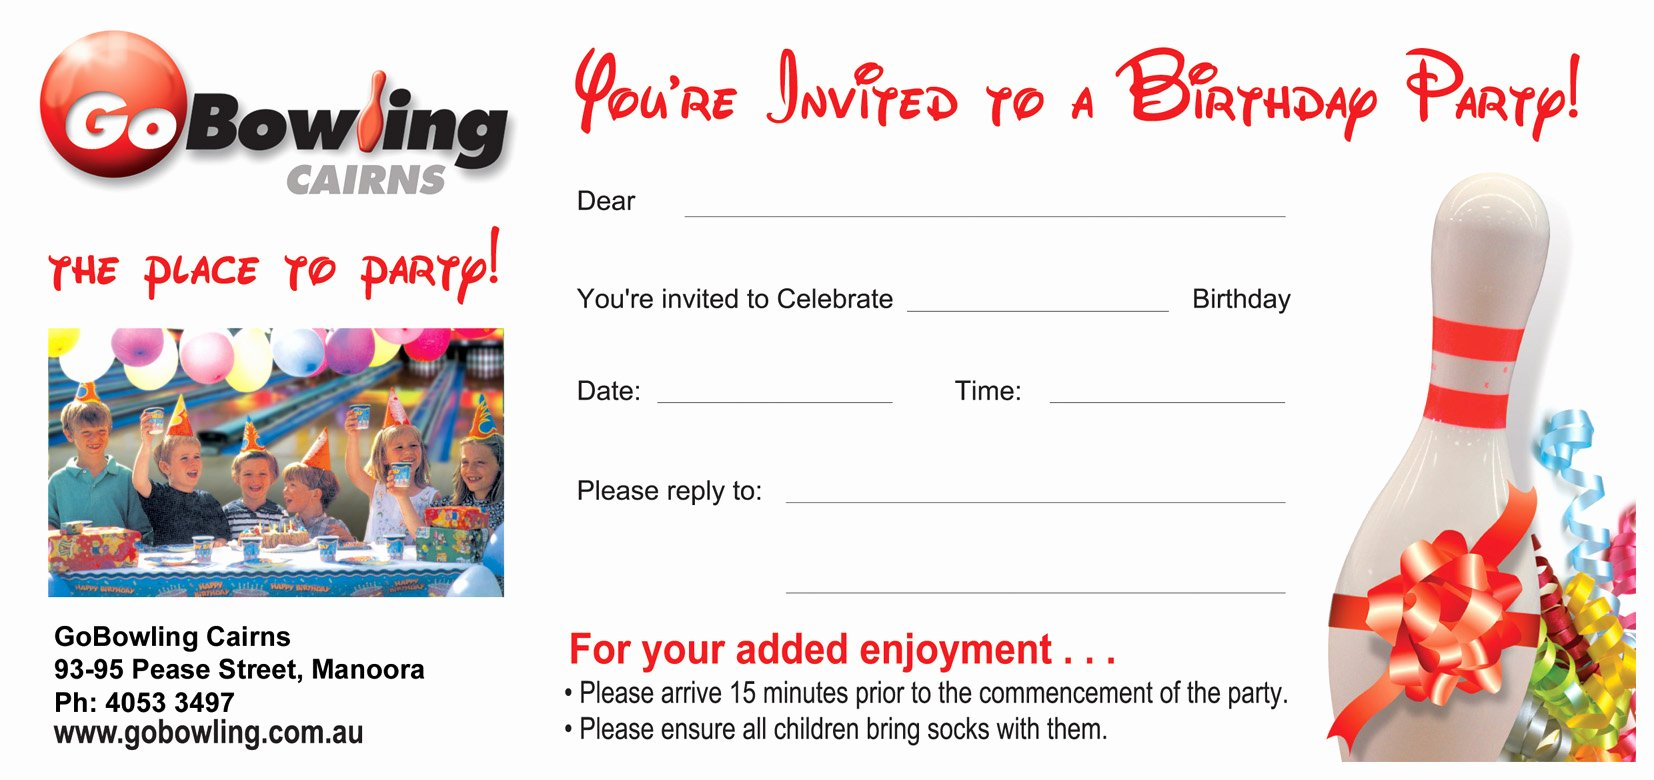 Bowling Party Invitation Templates Free Luxury Bowling Party Invitations Templates Ideas Bowling Party